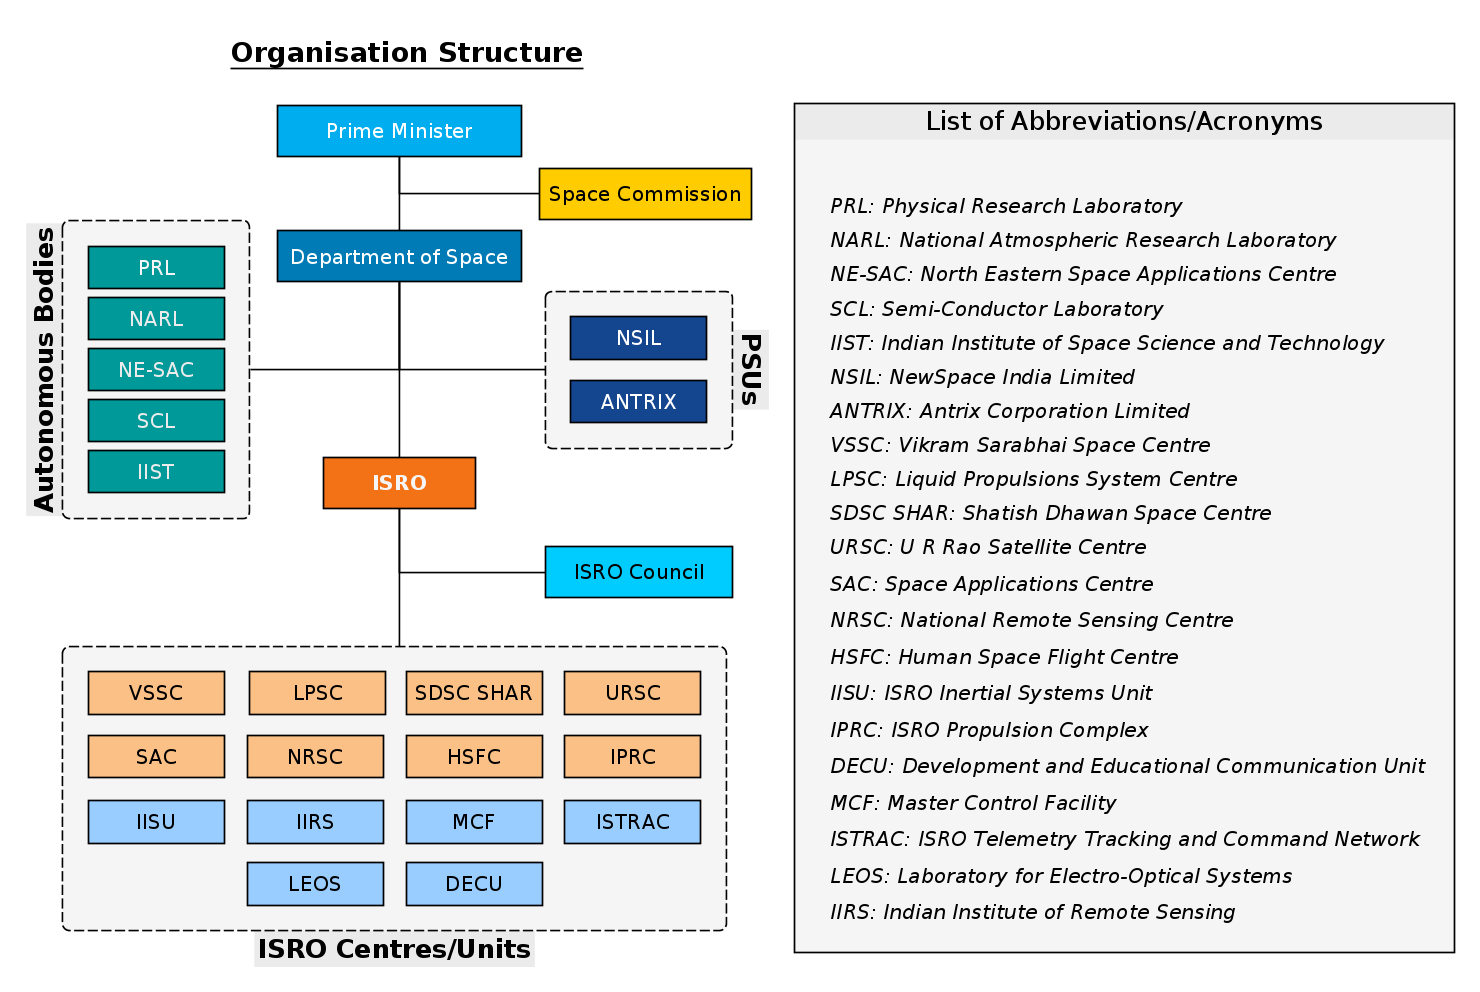 Creating An Organizational Chart In Word: Department of Space (India) - organization chart.jpg ,Chart